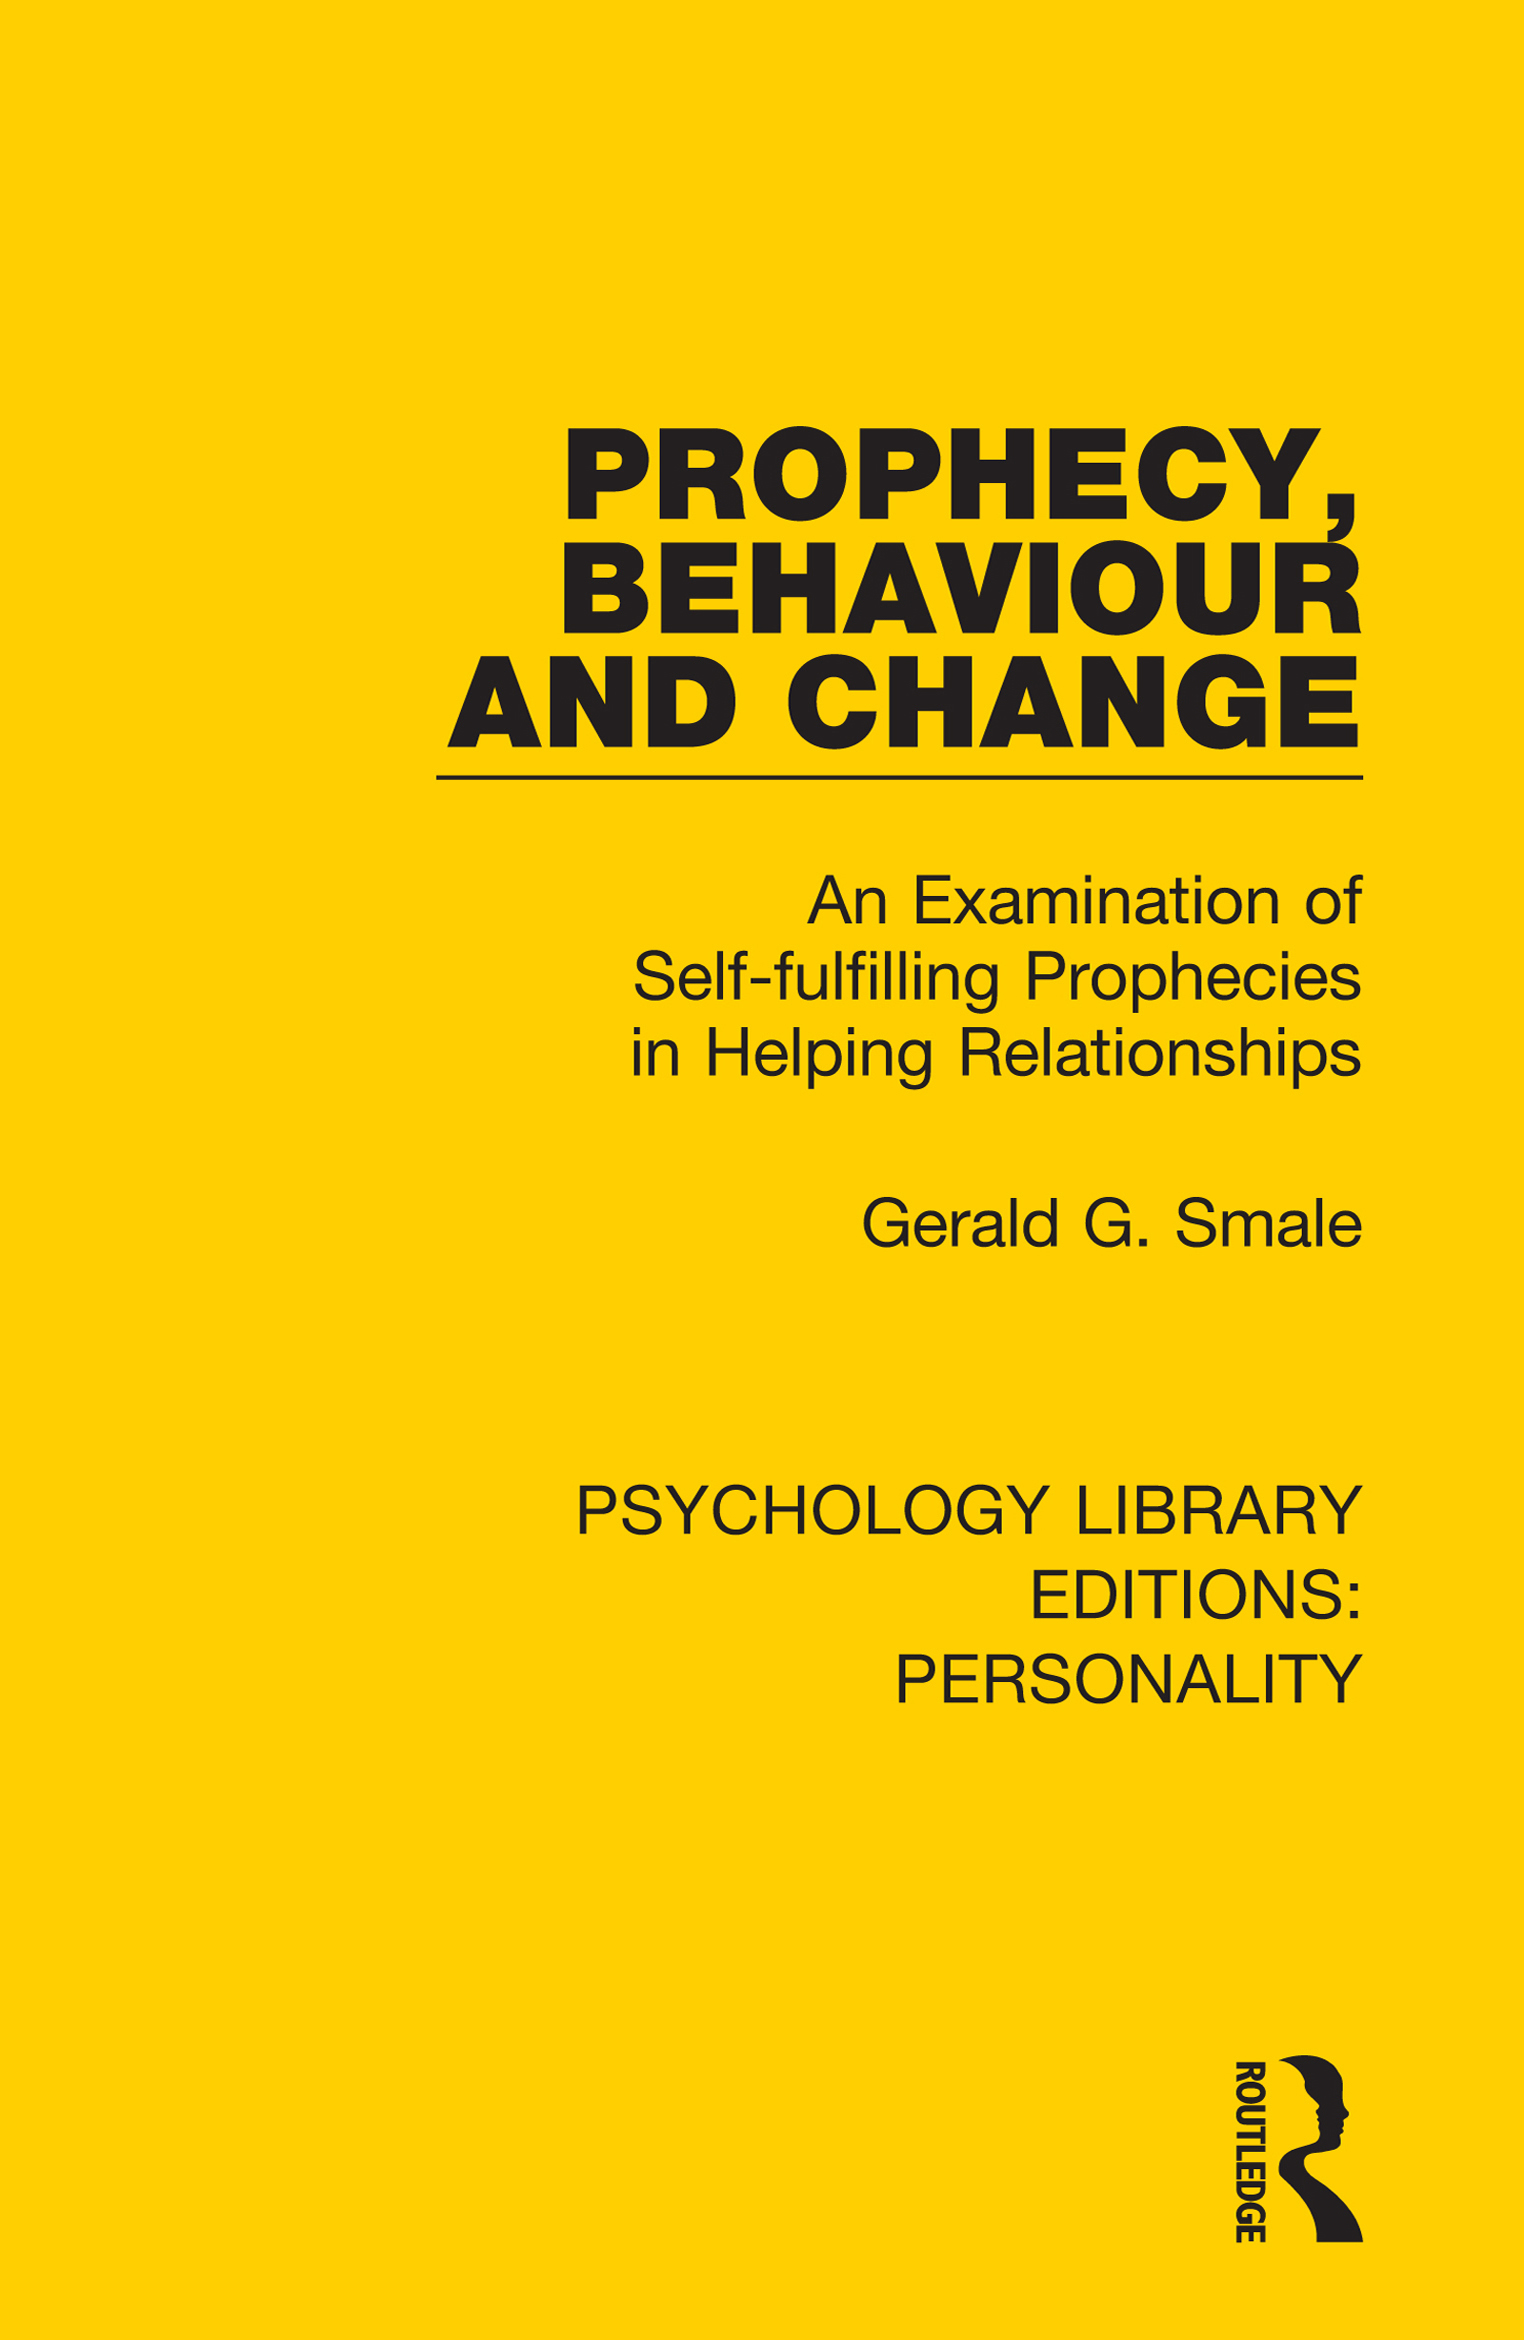 Prophecy, Behaviour and Change